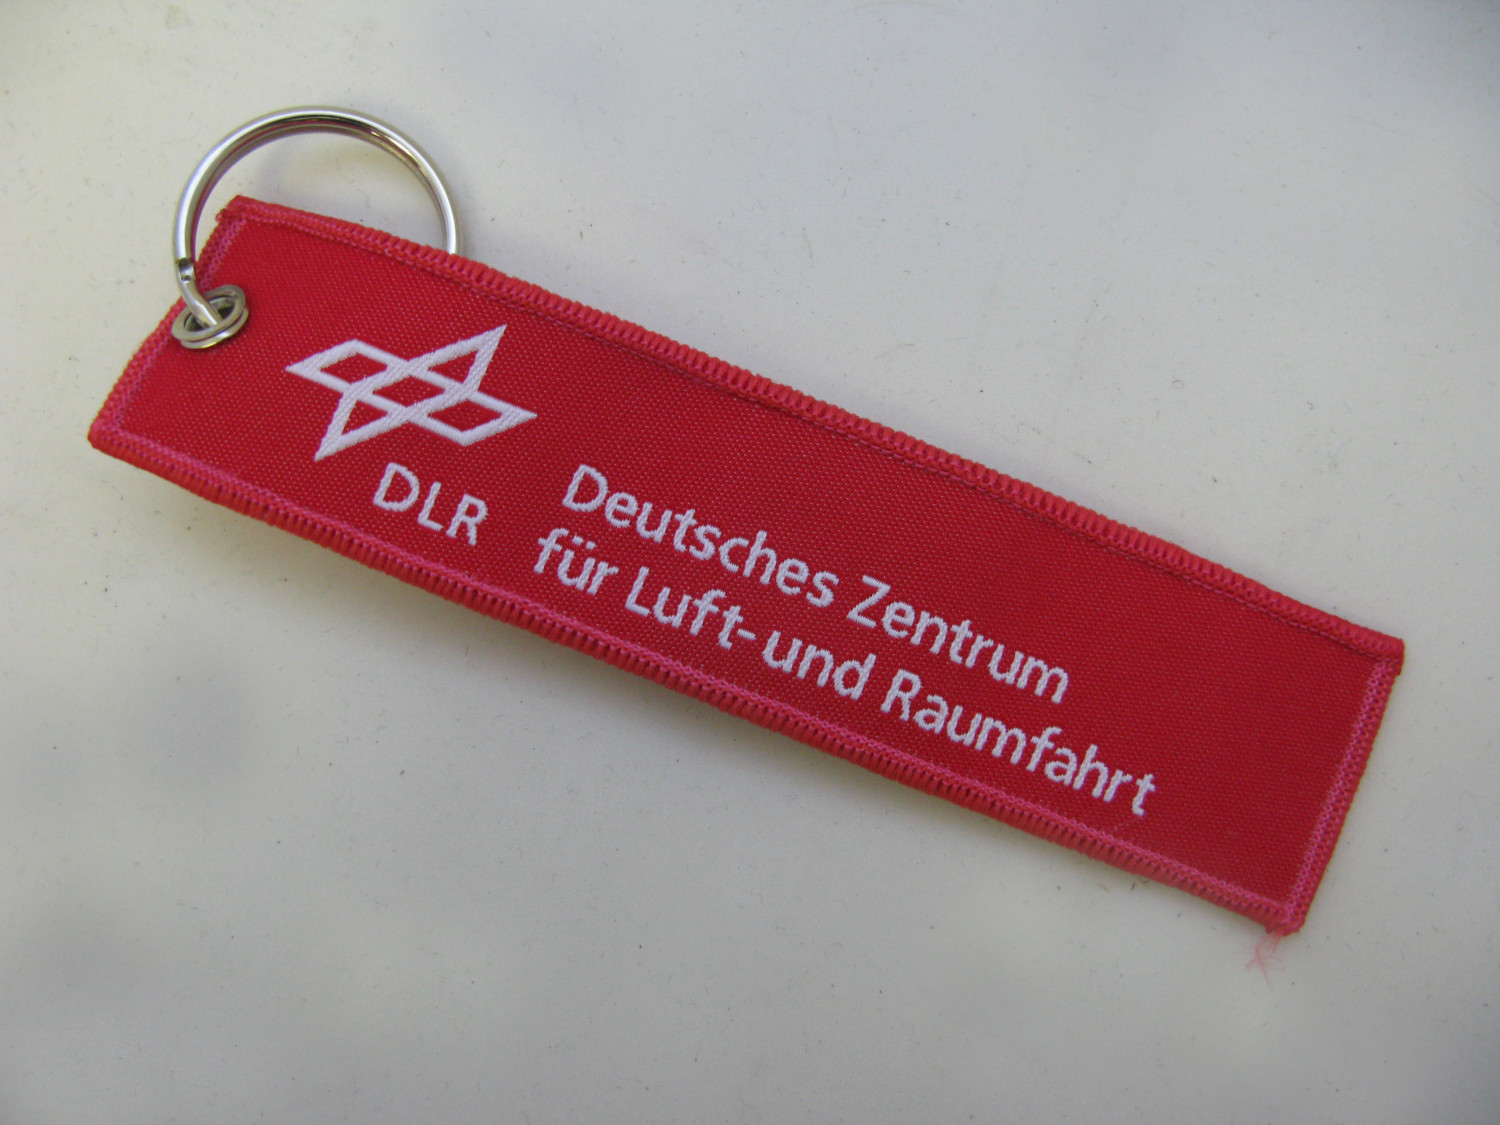 Key ring from German Aerospace Centre